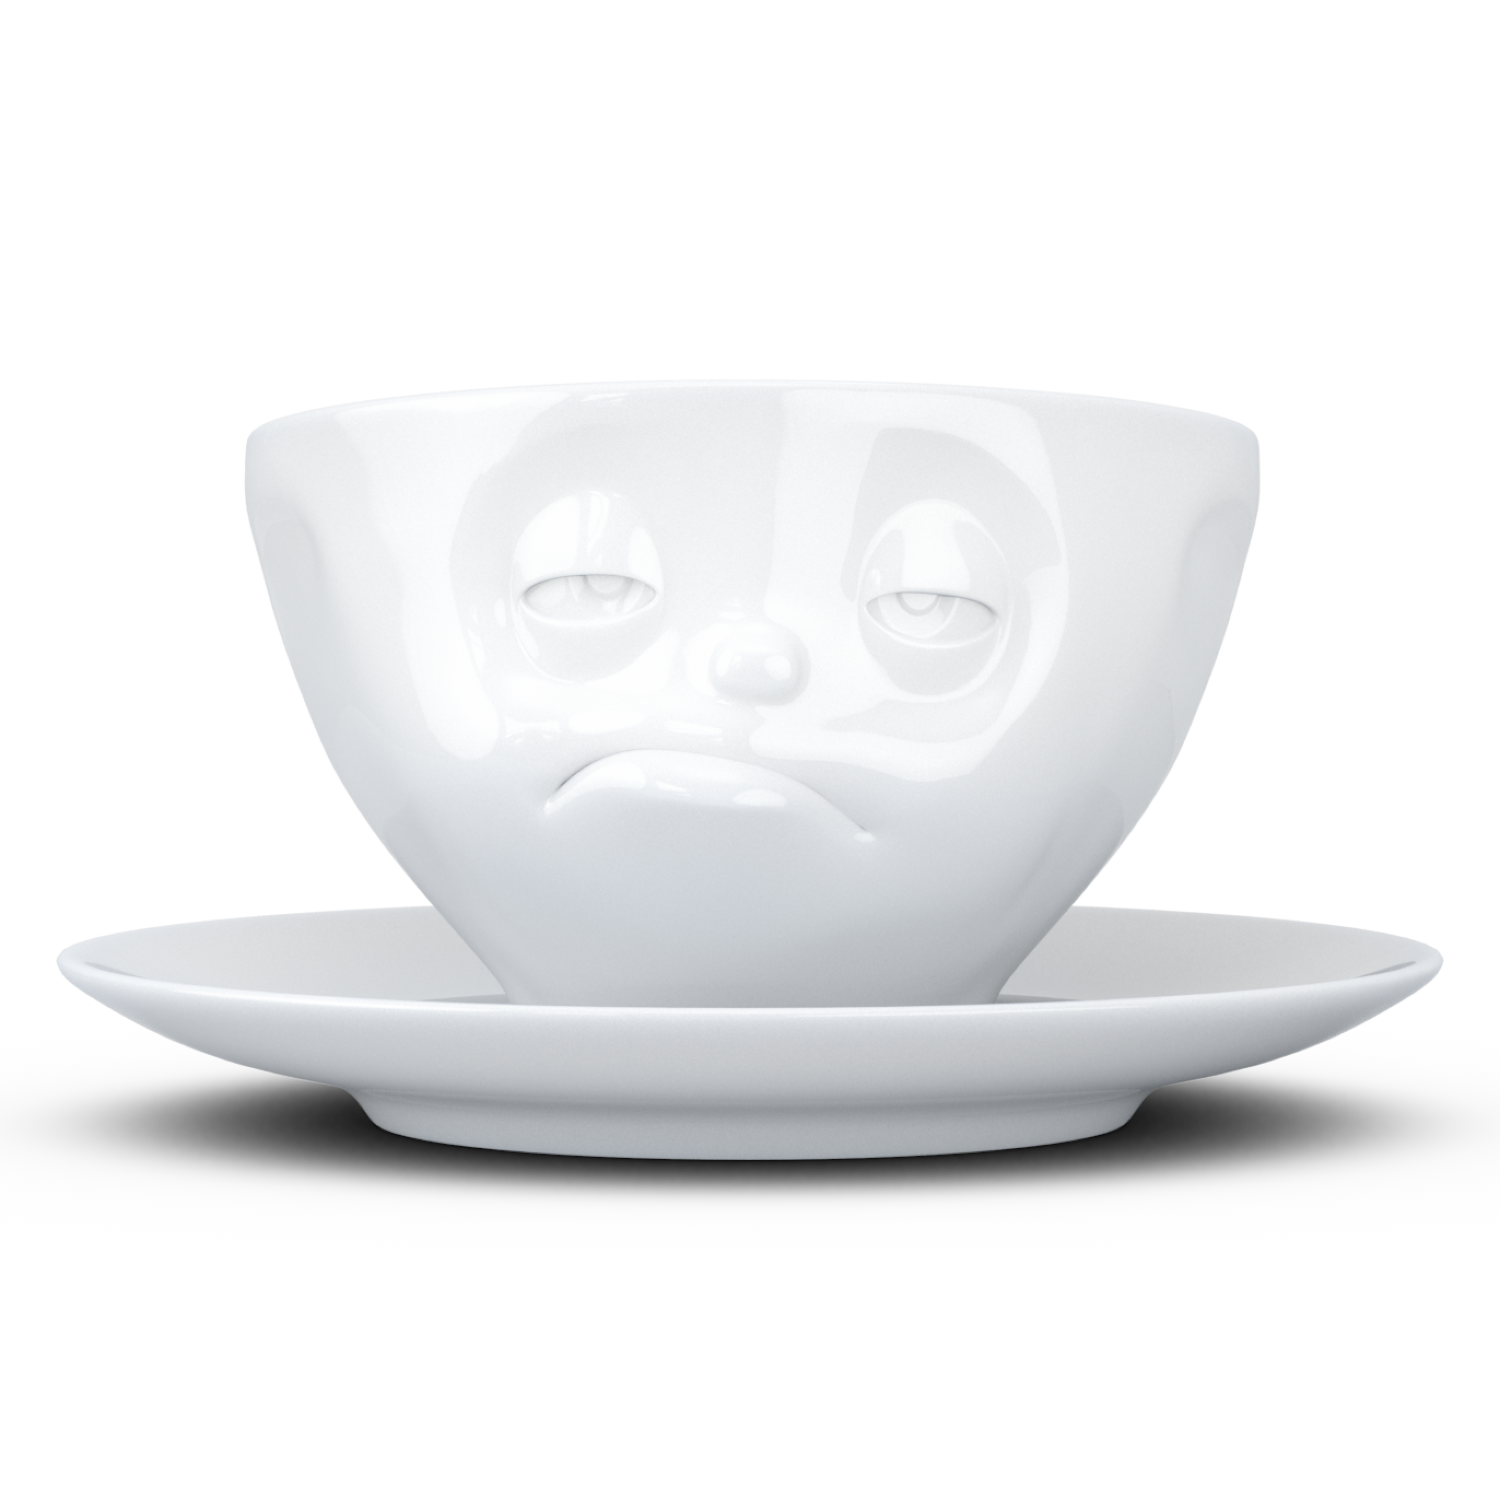 Tassen Crockery : Products cup snoozy white